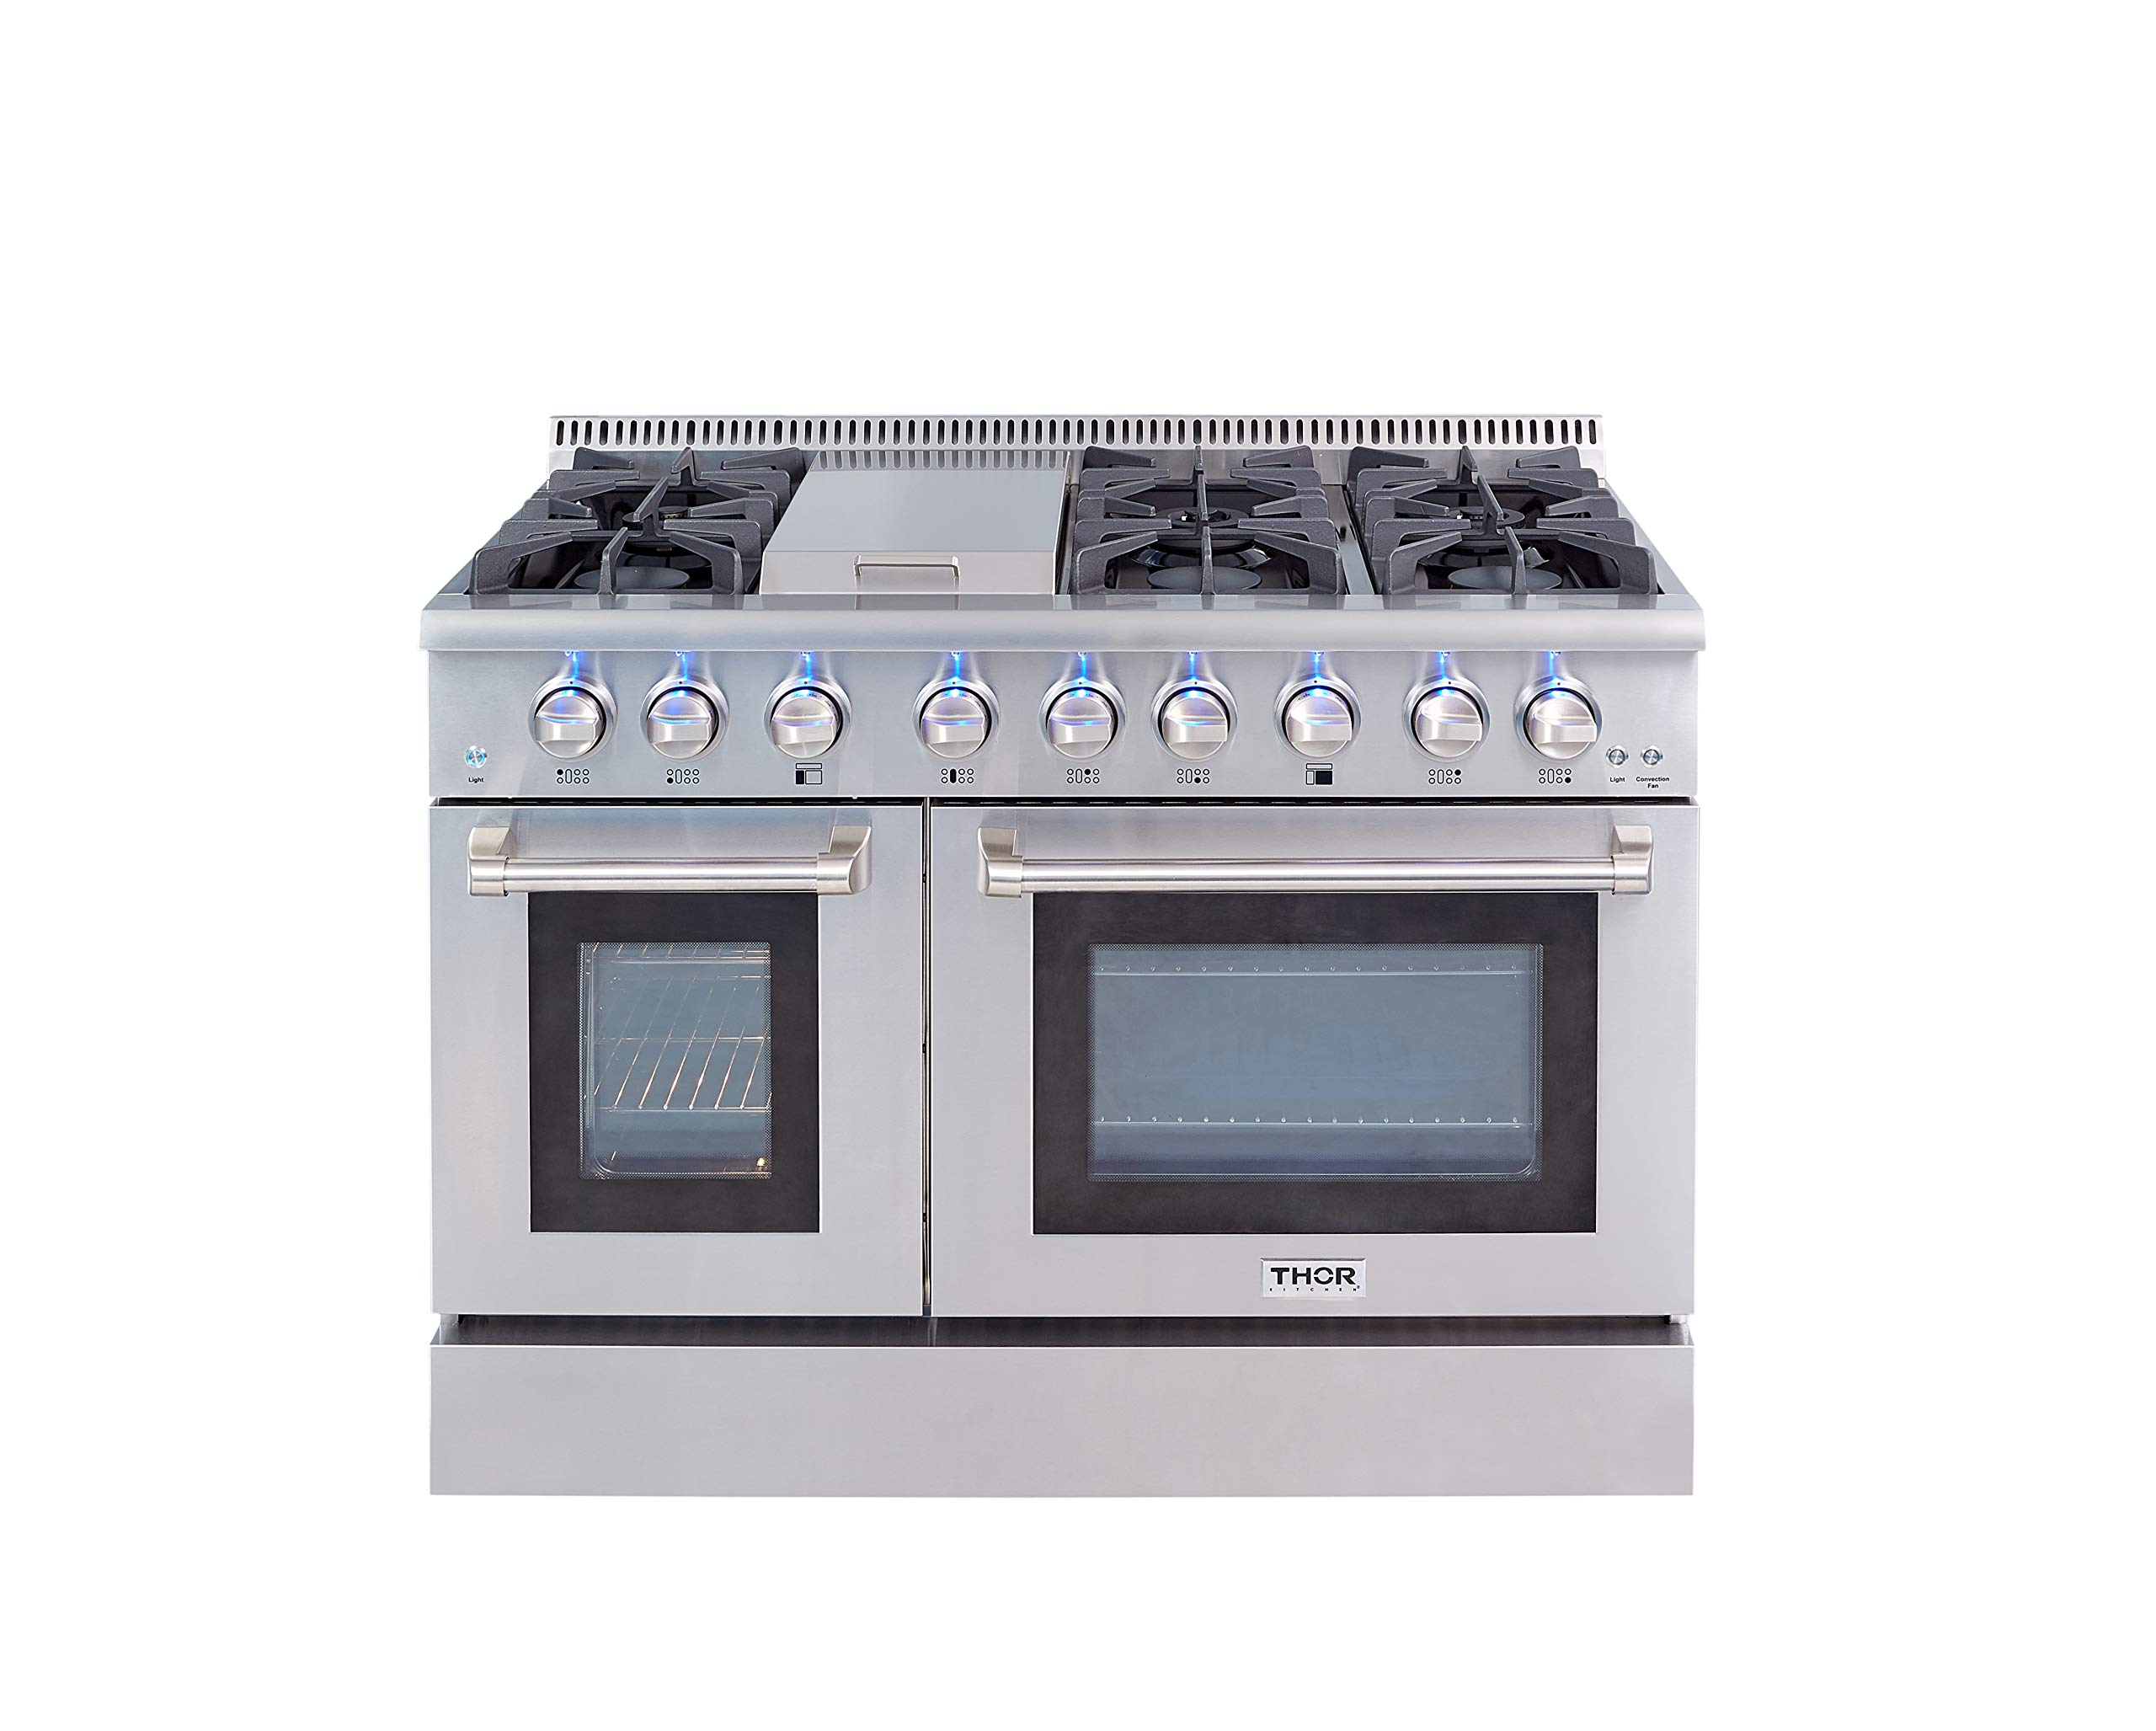 Thor Kitchen Burners Double Stainless